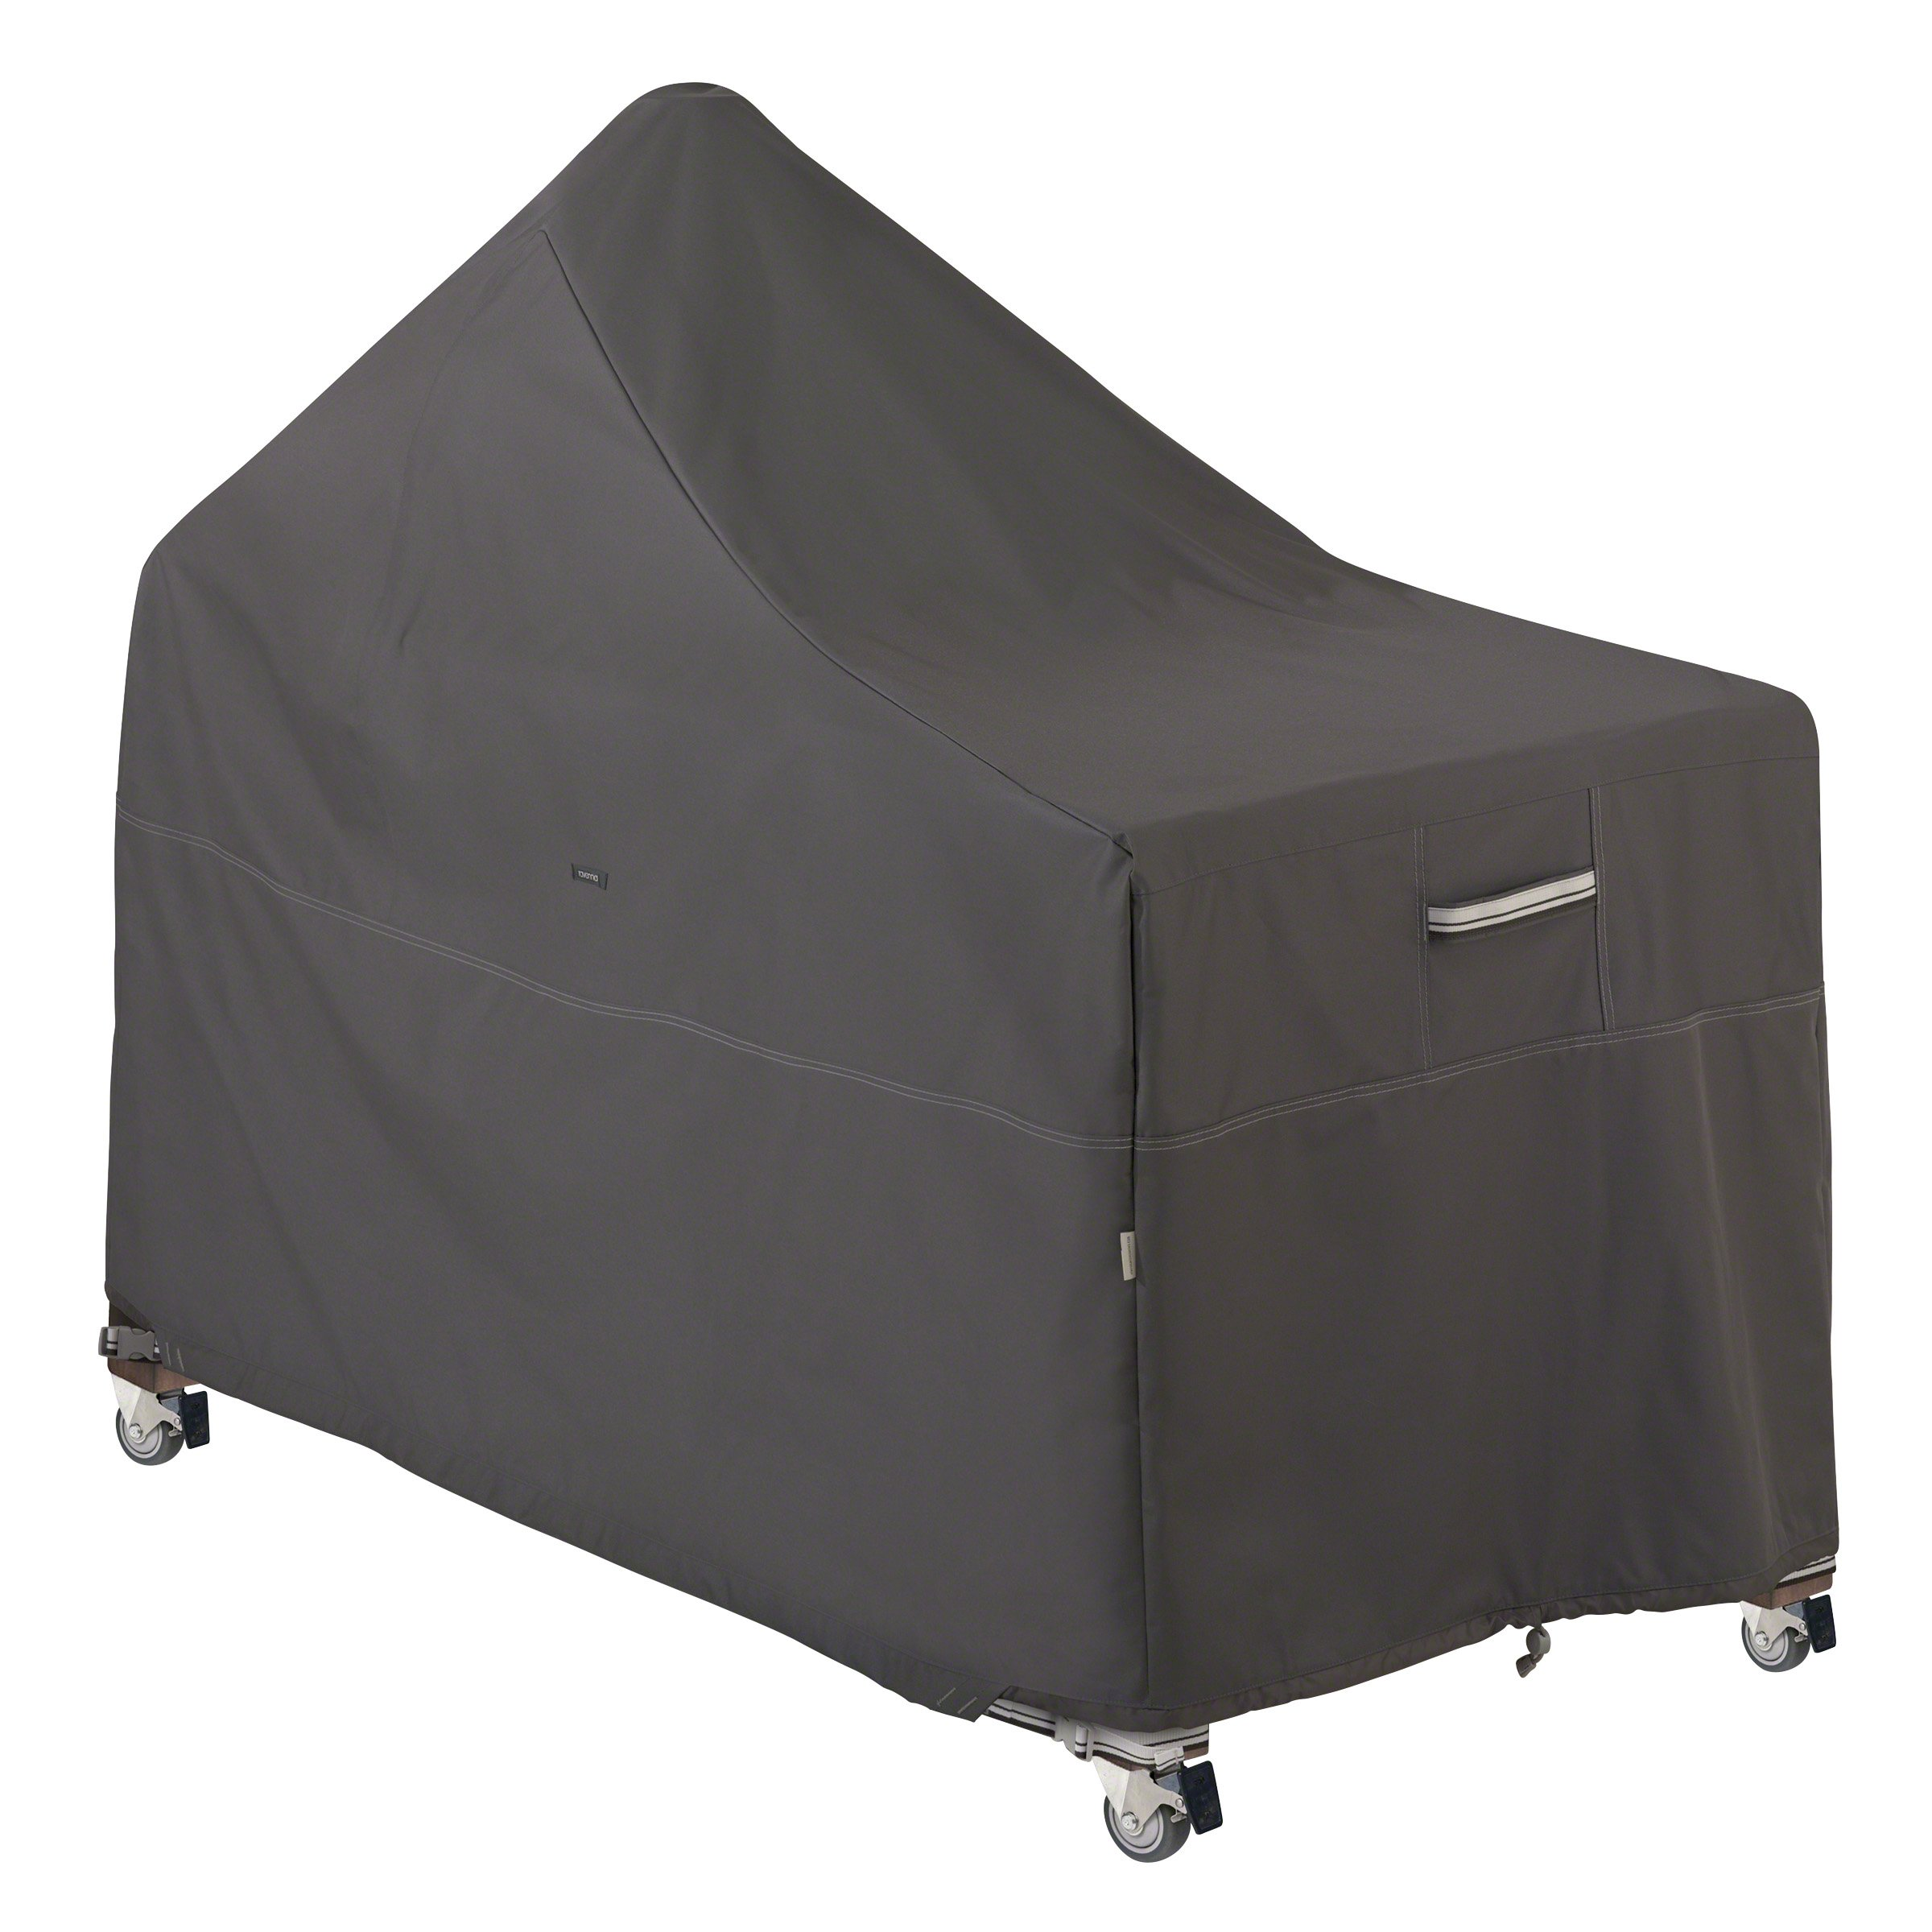 Classic Accessories Ravenna Kamado Ceramic Grill with Offset Table Cover - Premium Outdoor Grill Cover with Durable and Water Resistant Fabric (55-420-015101-EC) by Classic Accessories (Image #1)